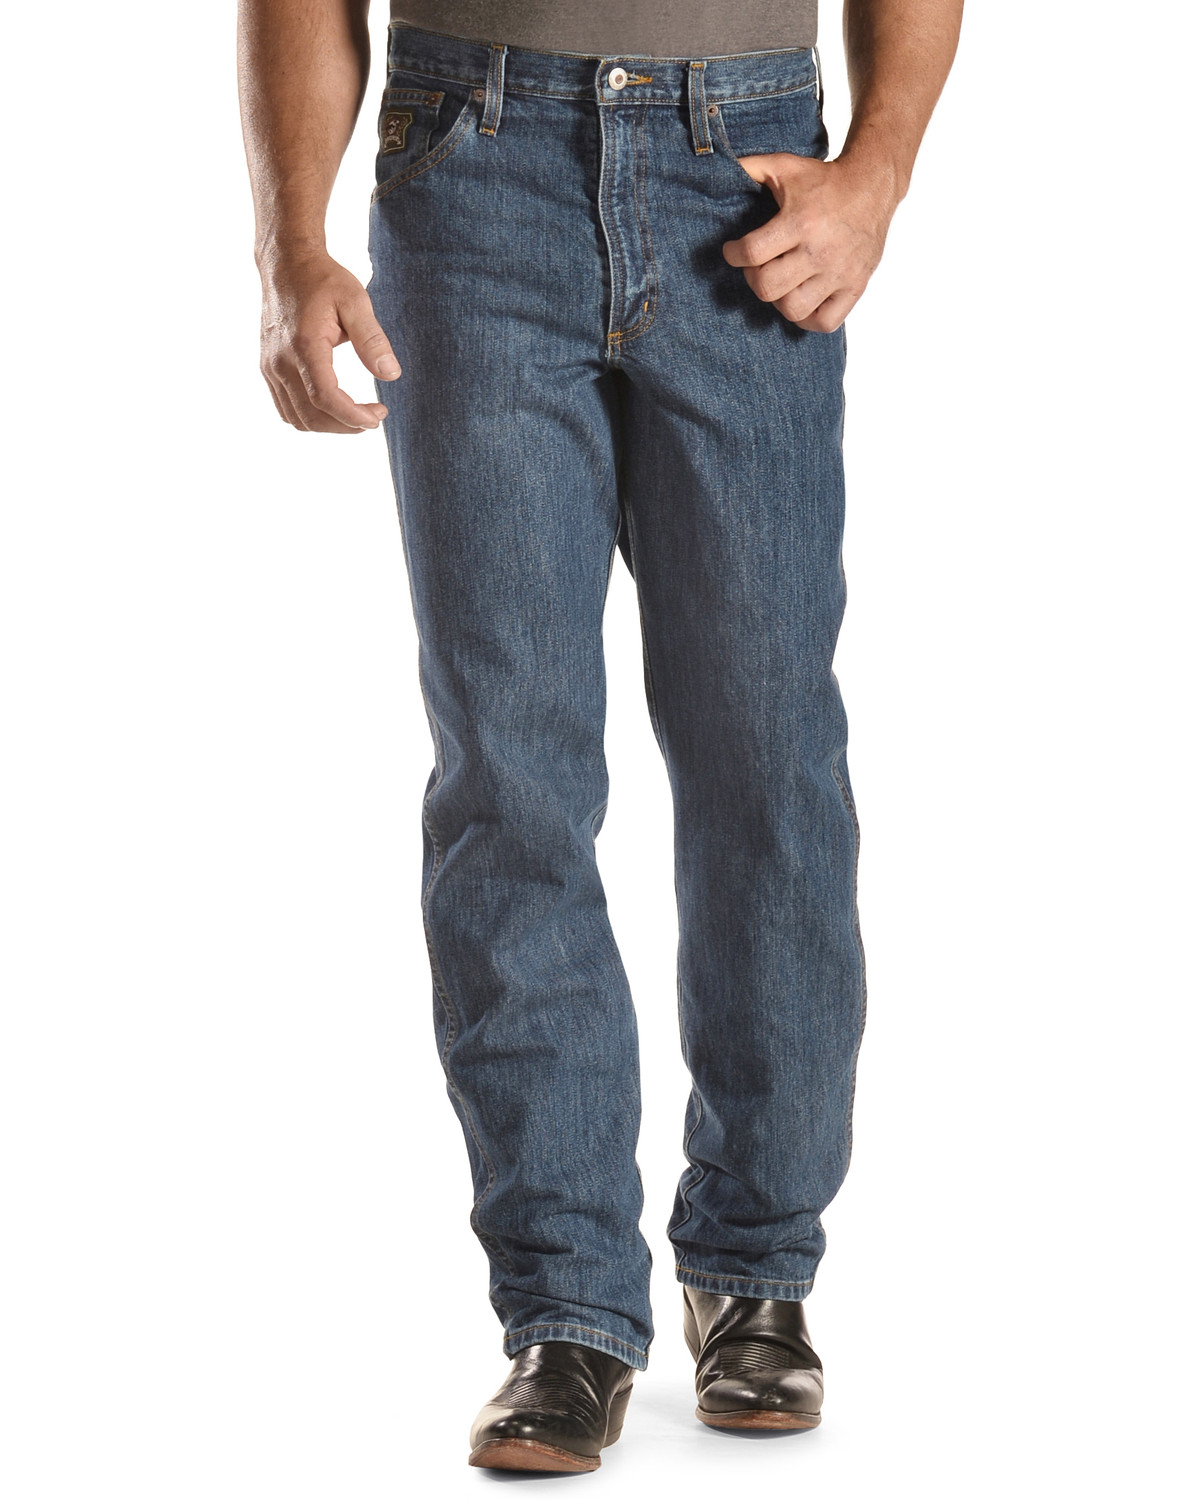 This section features the extra long pants for tall men with 38″ inseam lengths. These men's 38 inch inseam pants come from a variety of online tall stores.